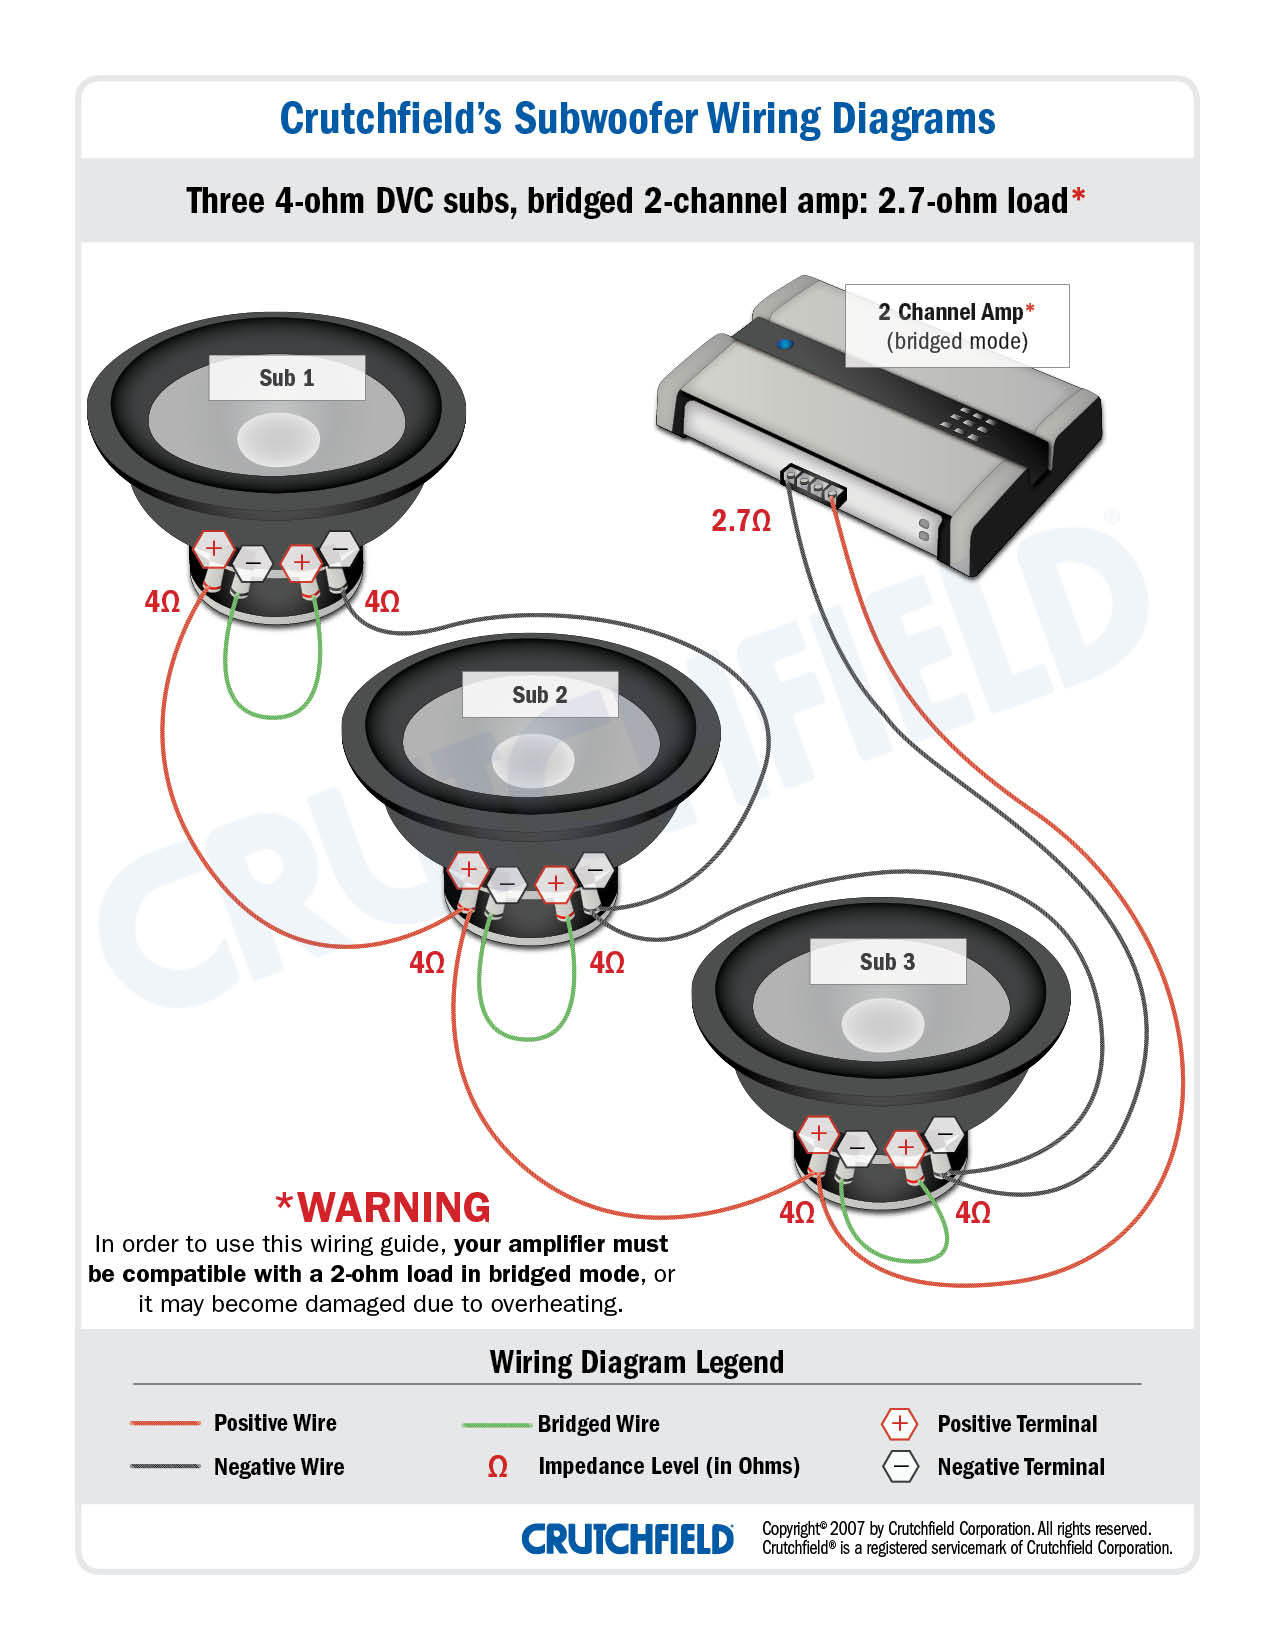 subwoofer wiring diagrams rh crutchfield com 2 ohm wiring diagram 2 ohm wiring diagram